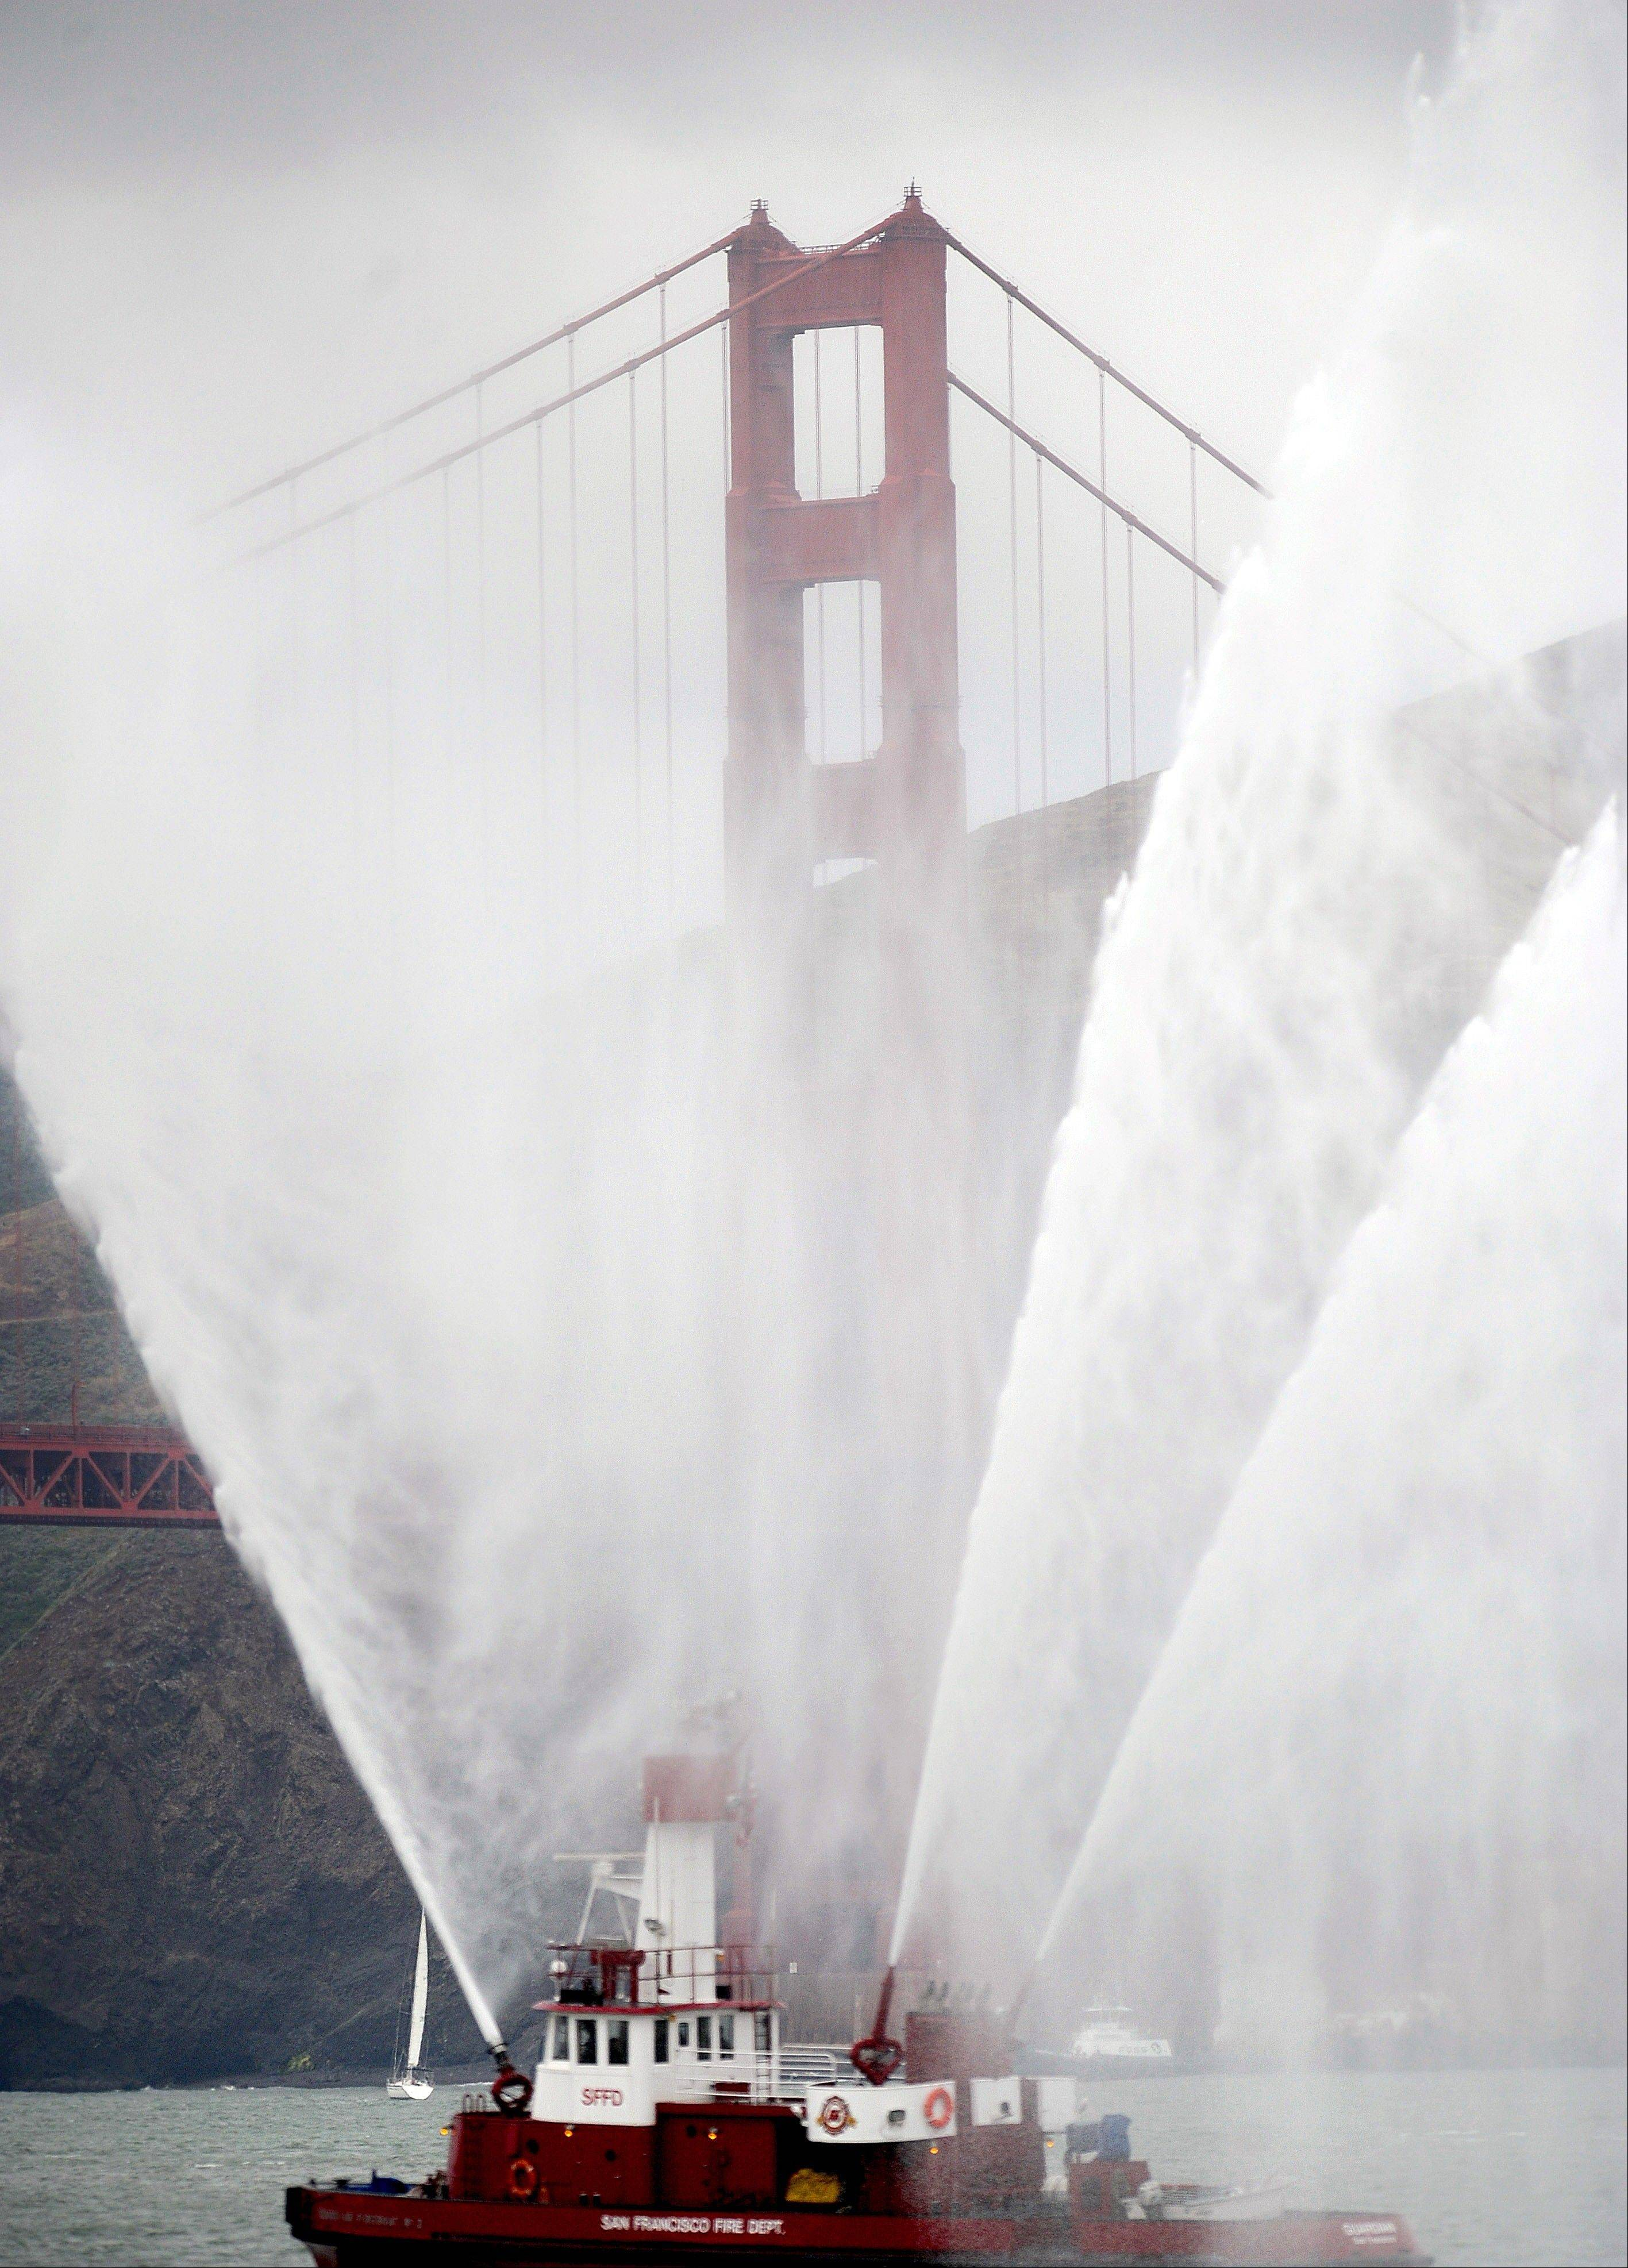 The Phoenix fireboat sprays plumes of water as part of the Golden Gate Bridge's 75th anniversary celebration Sunday in San Francisco. The commemoration included a vintage boat parade and a fireworks display slated for the evening.